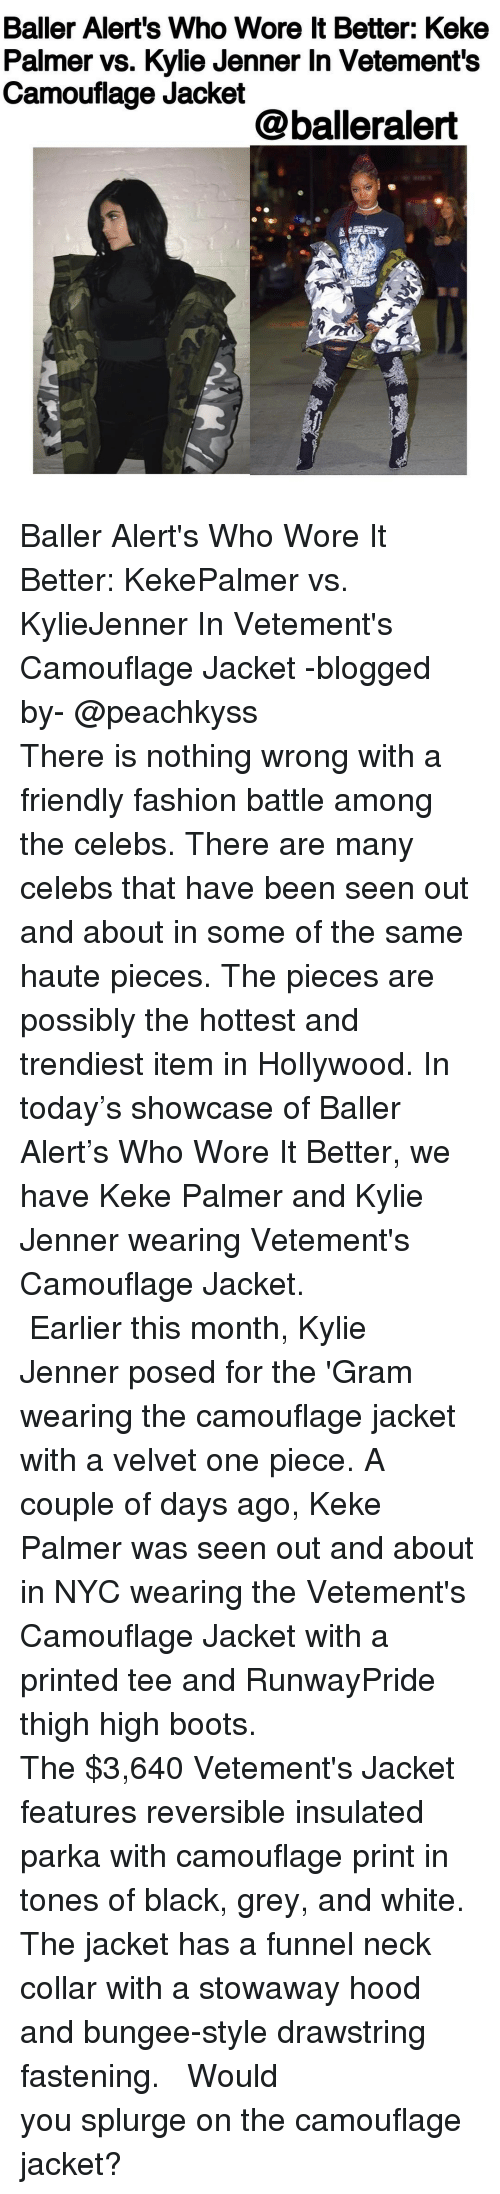 one piec: Baller Alert's Who Wore ltBetter: Keke  Palmer vs. Kylie Jenner In Vetement's  Camouflage Jacket  @balleralert Baller Alert's Who Wore It Better: KekePalmer vs. KylieJenner In Vetement's Camouflage Jacket -blogged by- @peachkyss ⠀⠀⠀⠀⠀⠀⠀⠀⠀ ⠀⠀⠀⠀⠀⠀⠀⠀⠀ There is nothing wrong with a friendly fashion battle among the celebs. There are many celebs that have been seen out and about in some of the same haute pieces. The pieces are possibly the hottest and trendiest item in Hollywood. In today's showcase of Baller Alert's Who Wore It Better, we have Keke Palmer and Kylie Jenner wearing Vetement's Camouflage Jacket. ⠀⠀⠀⠀⠀⠀⠀⠀⠀ ⠀⠀⠀⠀⠀⠀⠀⠀⠀ Earlier this month, Kylie Jenner posed for the 'Gram wearing the camouflage jacket with a velvet one piece. A couple of days ago, Keke Palmer was seen out and about in NYC wearing the Vetement's Camouflage Jacket with a printed tee and RunwayPride thigh high boots. ⠀⠀⠀⠀⠀⠀⠀⠀⠀ ⠀⠀⠀⠀⠀⠀⠀⠀⠀ The $3,640 Vetement's Jacket features reversible insulated parka with camouflage print in tones of black, grey, and white. The jacket has a funnel neck collar with a stowaway hood and bungee-style drawstring fastening. ⠀⠀⠀⠀⠀⠀⠀⠀⠀ ⠀⠀⠀⠀⠀⠀⠀⠀⠀ Would you splurge on the camouflage jacket?